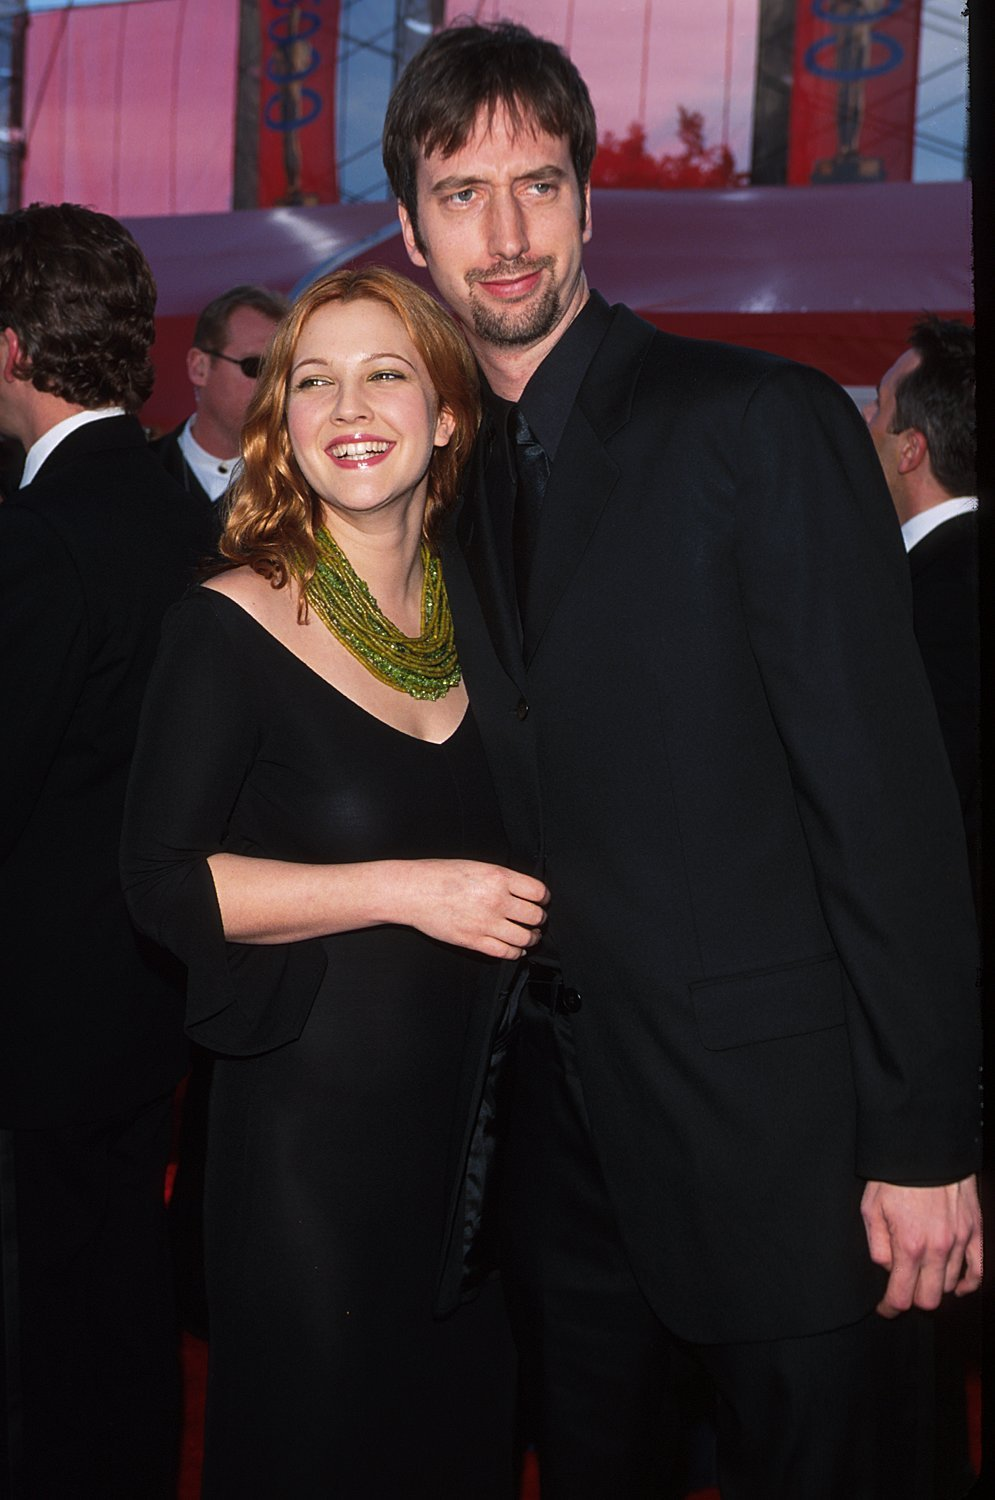 Tom Green and Drew Barrymore on March 26, 2000, in Los Angeles, California | Photo: Getty Images